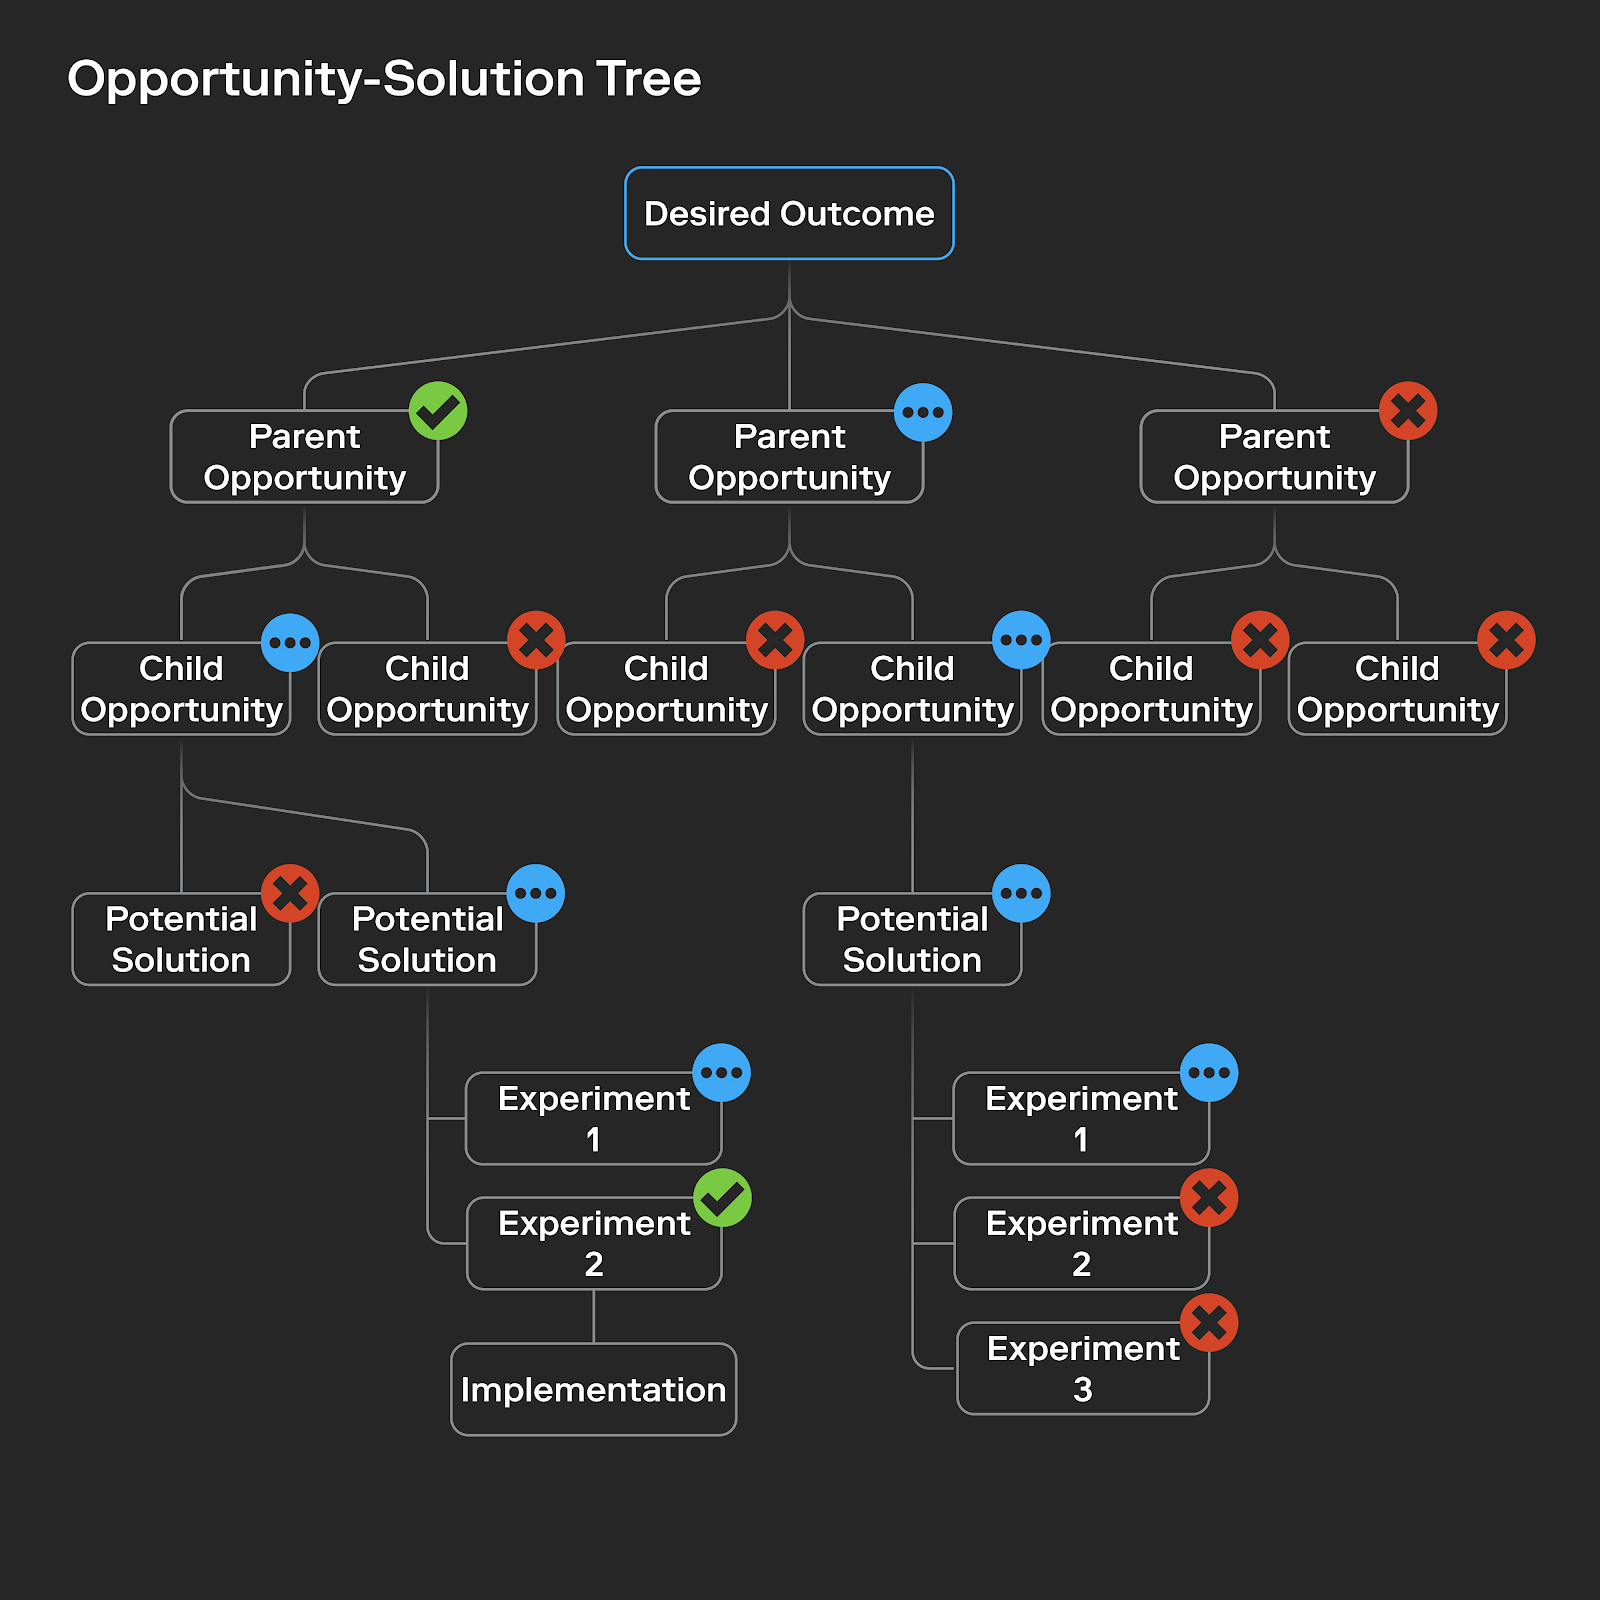 illustration of an example opportunity-solution tree